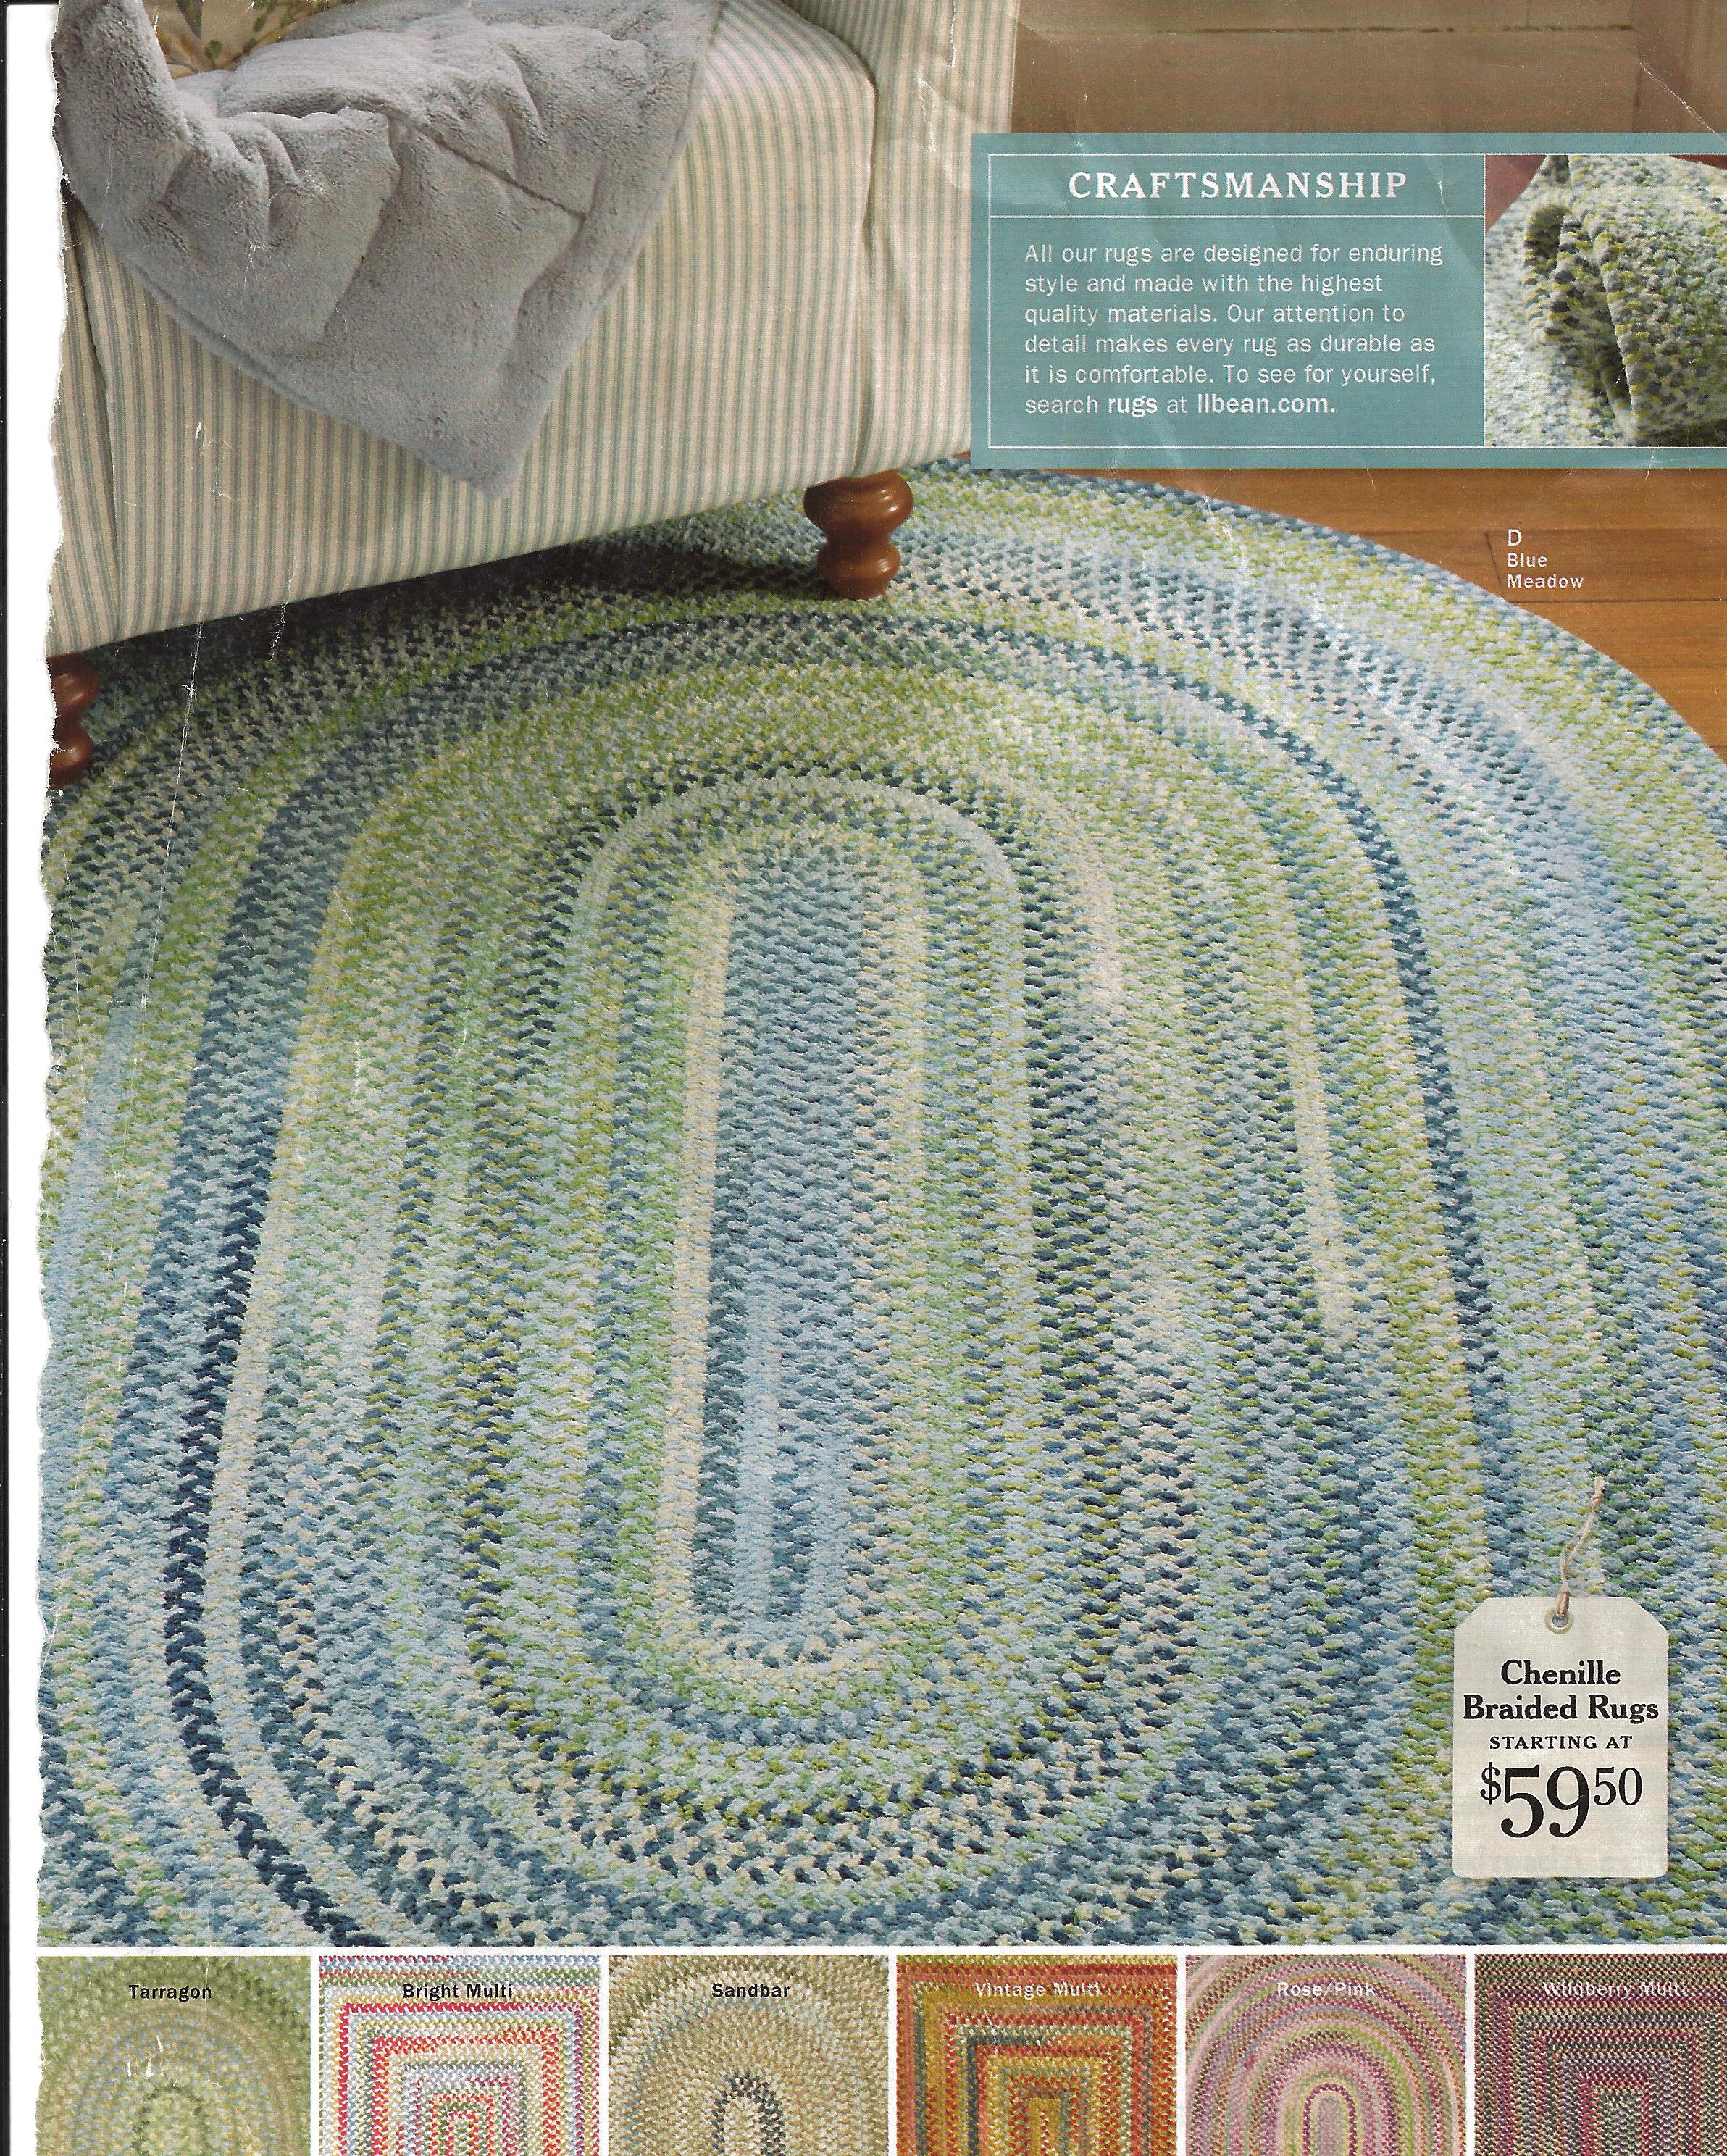 Braided Rug, LL Bean, Seaglass